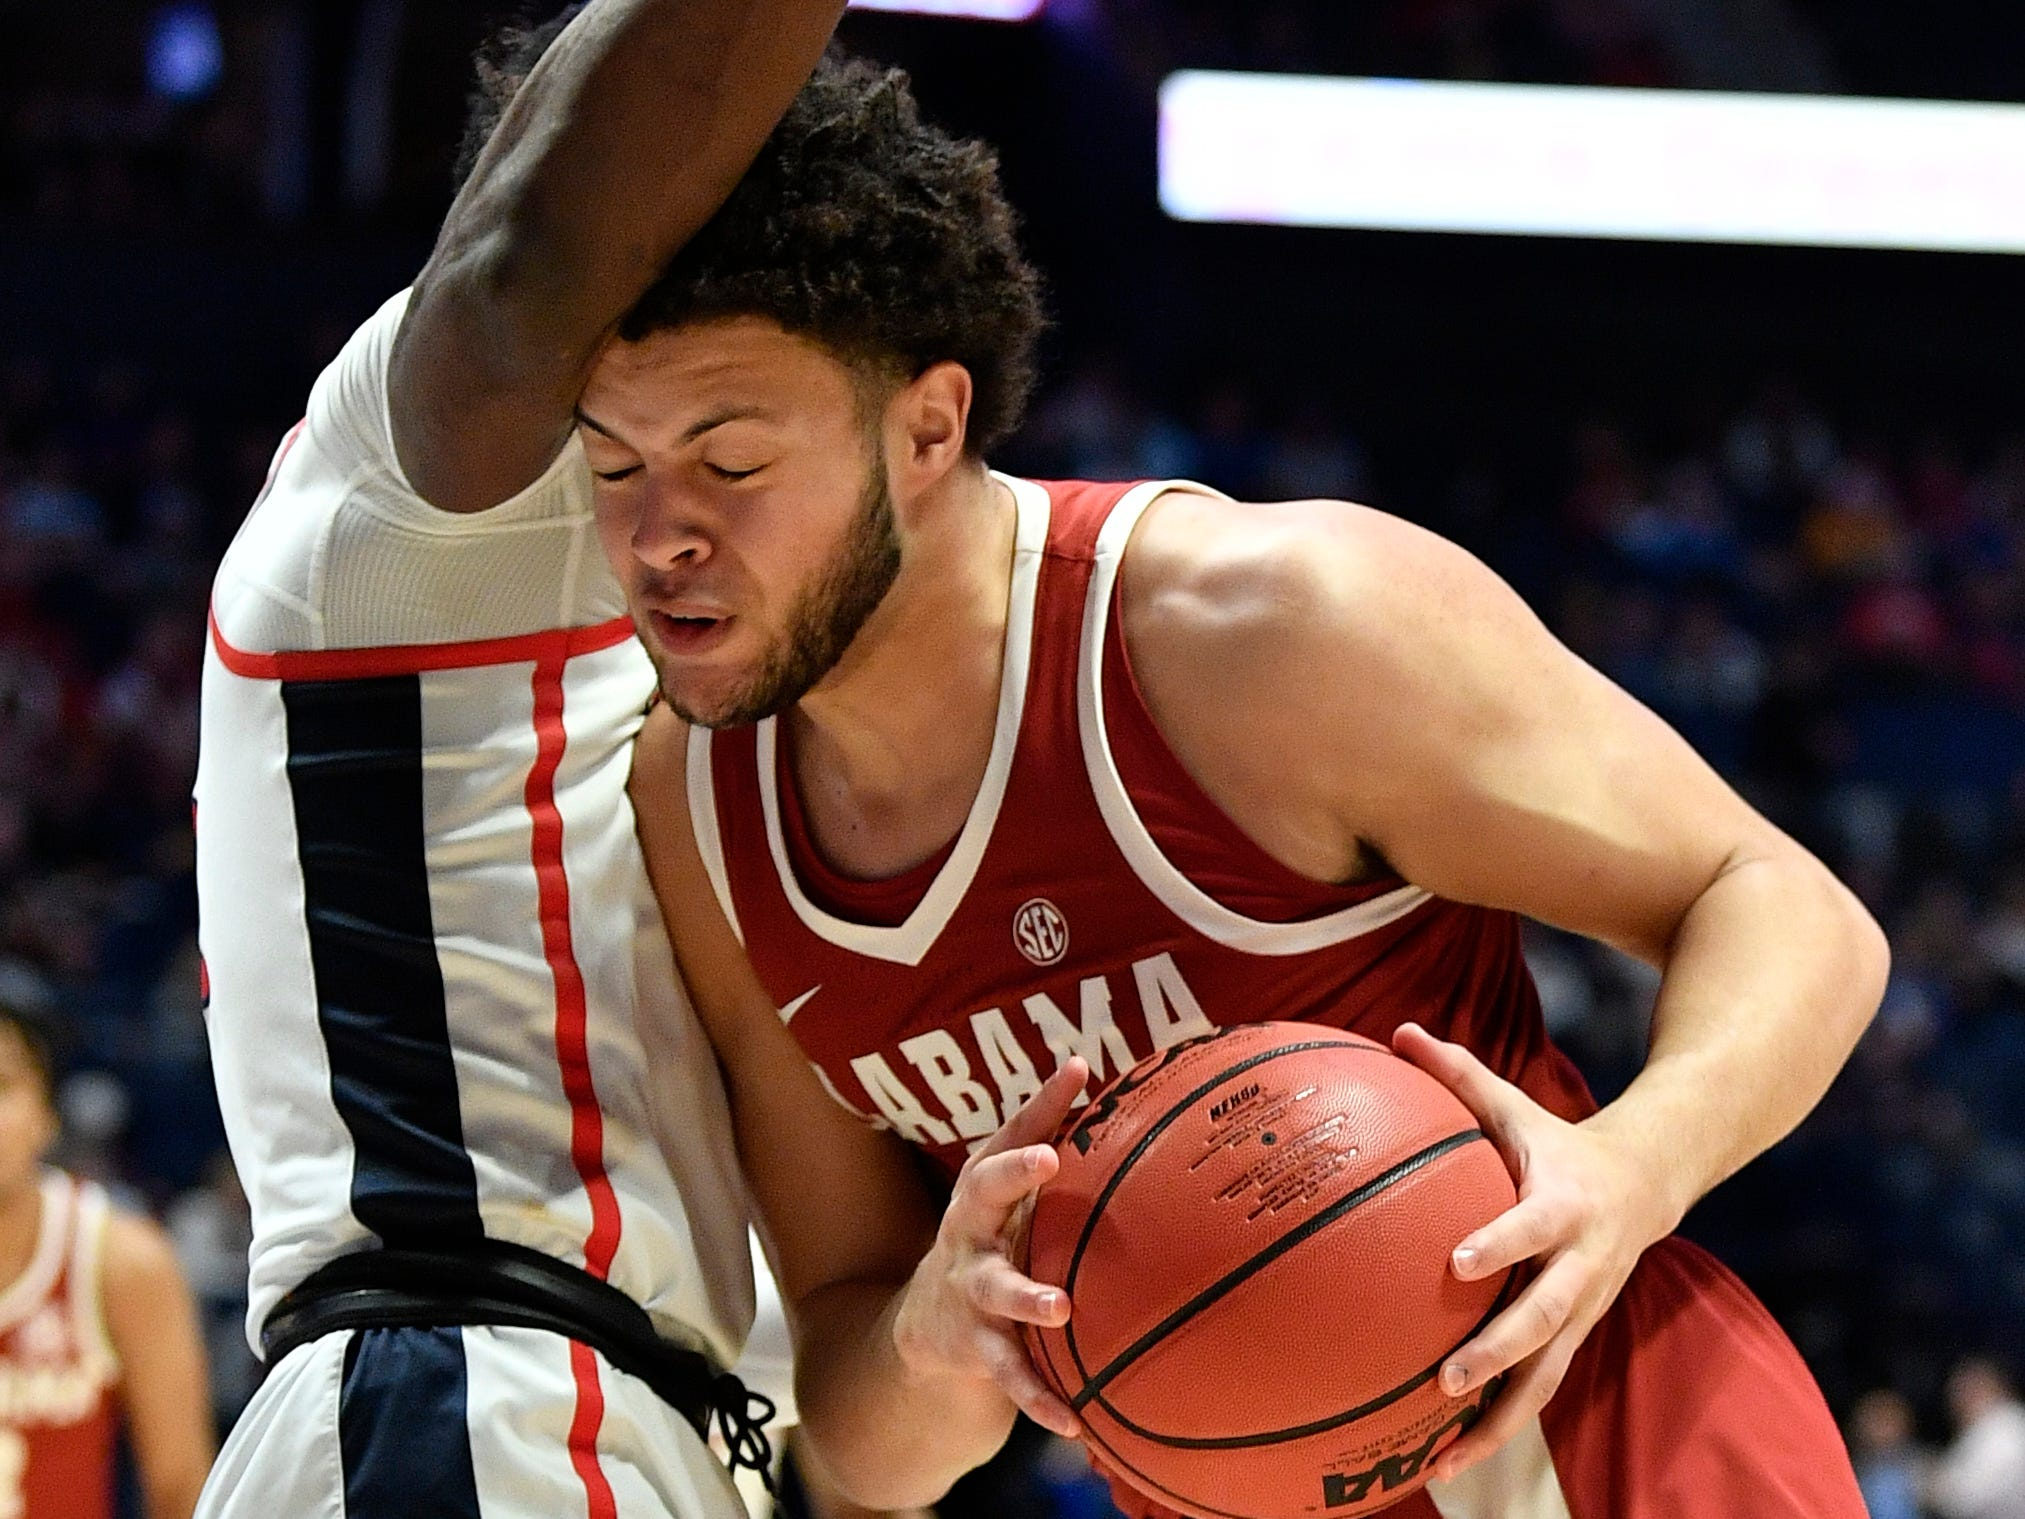 Alabama forward Alex Reese (3) tries to move the ball on Ole Miss guard Terence Davis (3) during the first half of the SEC Men's Basketball Tournament game at Bridgestone Arena in Nashville, Tenn., Thursday, March 14, 2019.